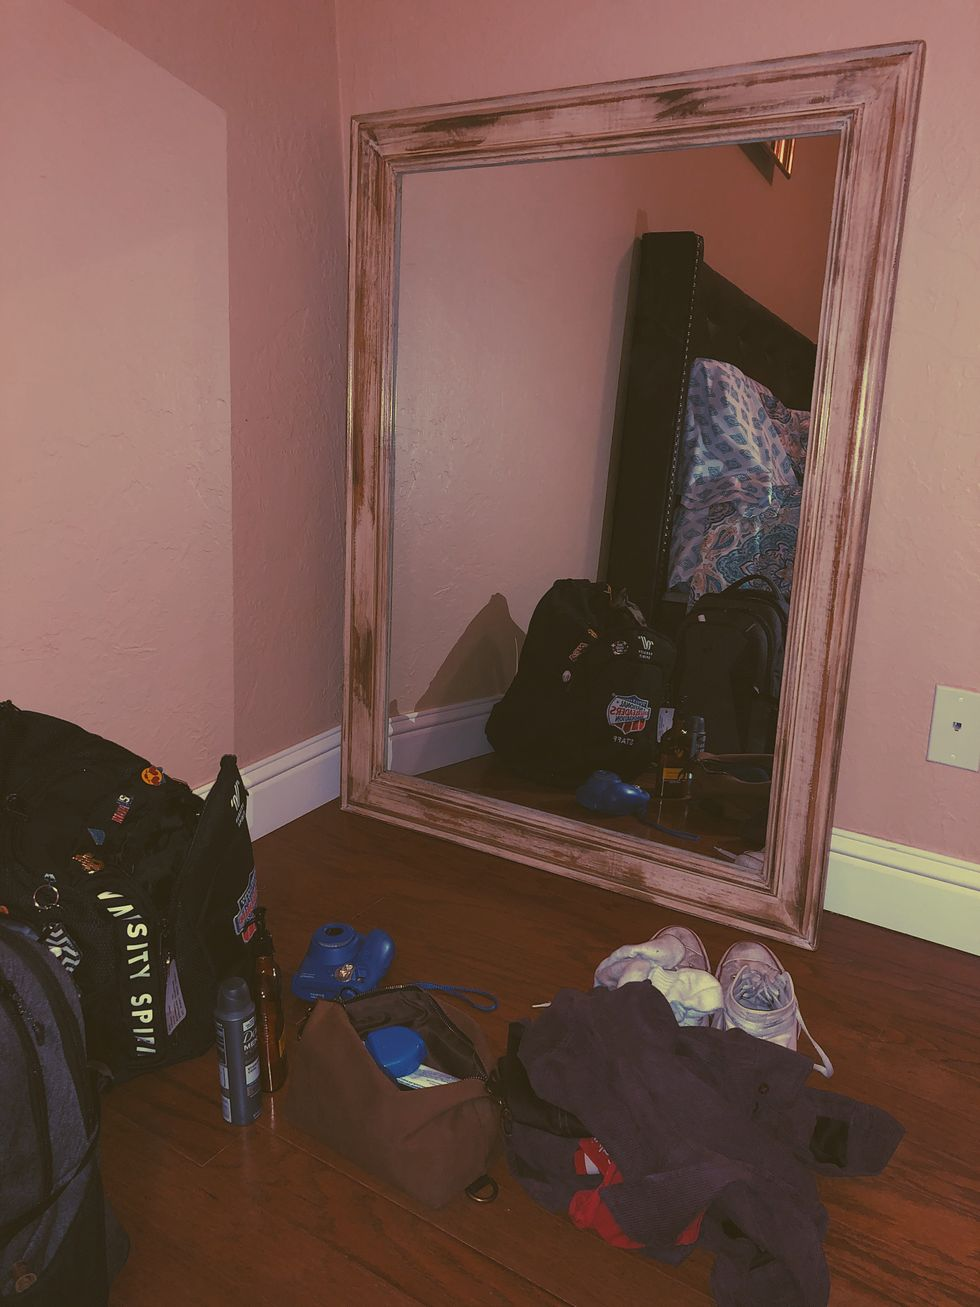 It's Crazy How A Mirror Brought Back All The Nostalgic Memories With My Best Friend